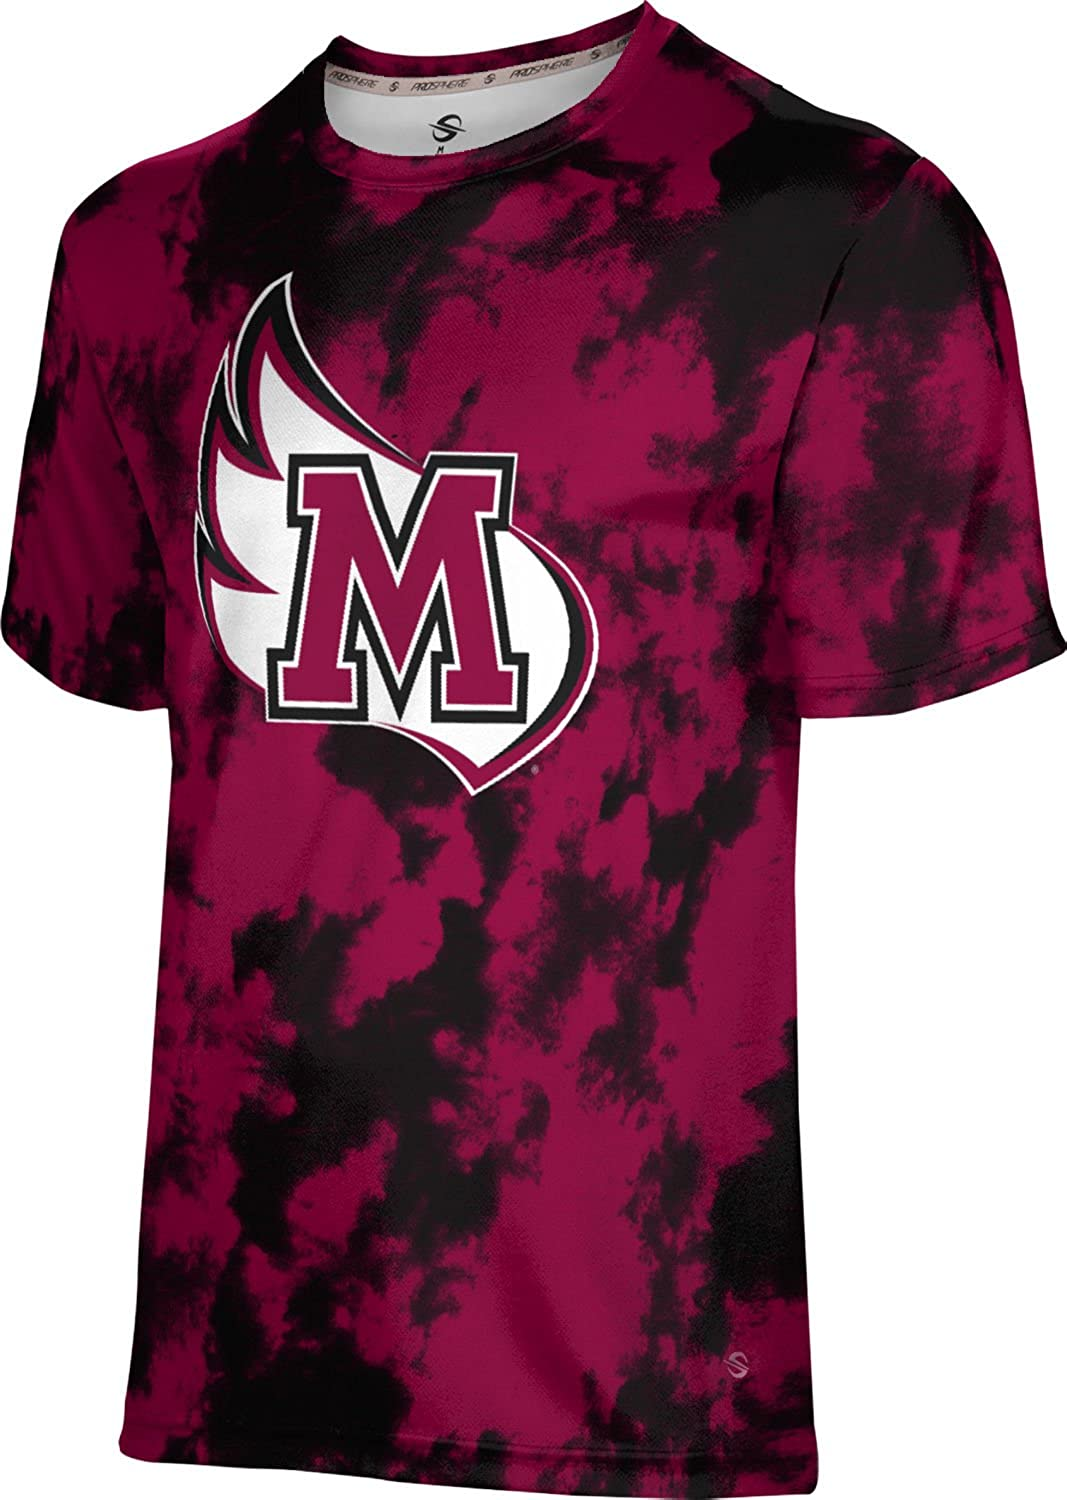 ProSphere High quality new Meredith College Men's Performance Limited price Grunge T-Shirt